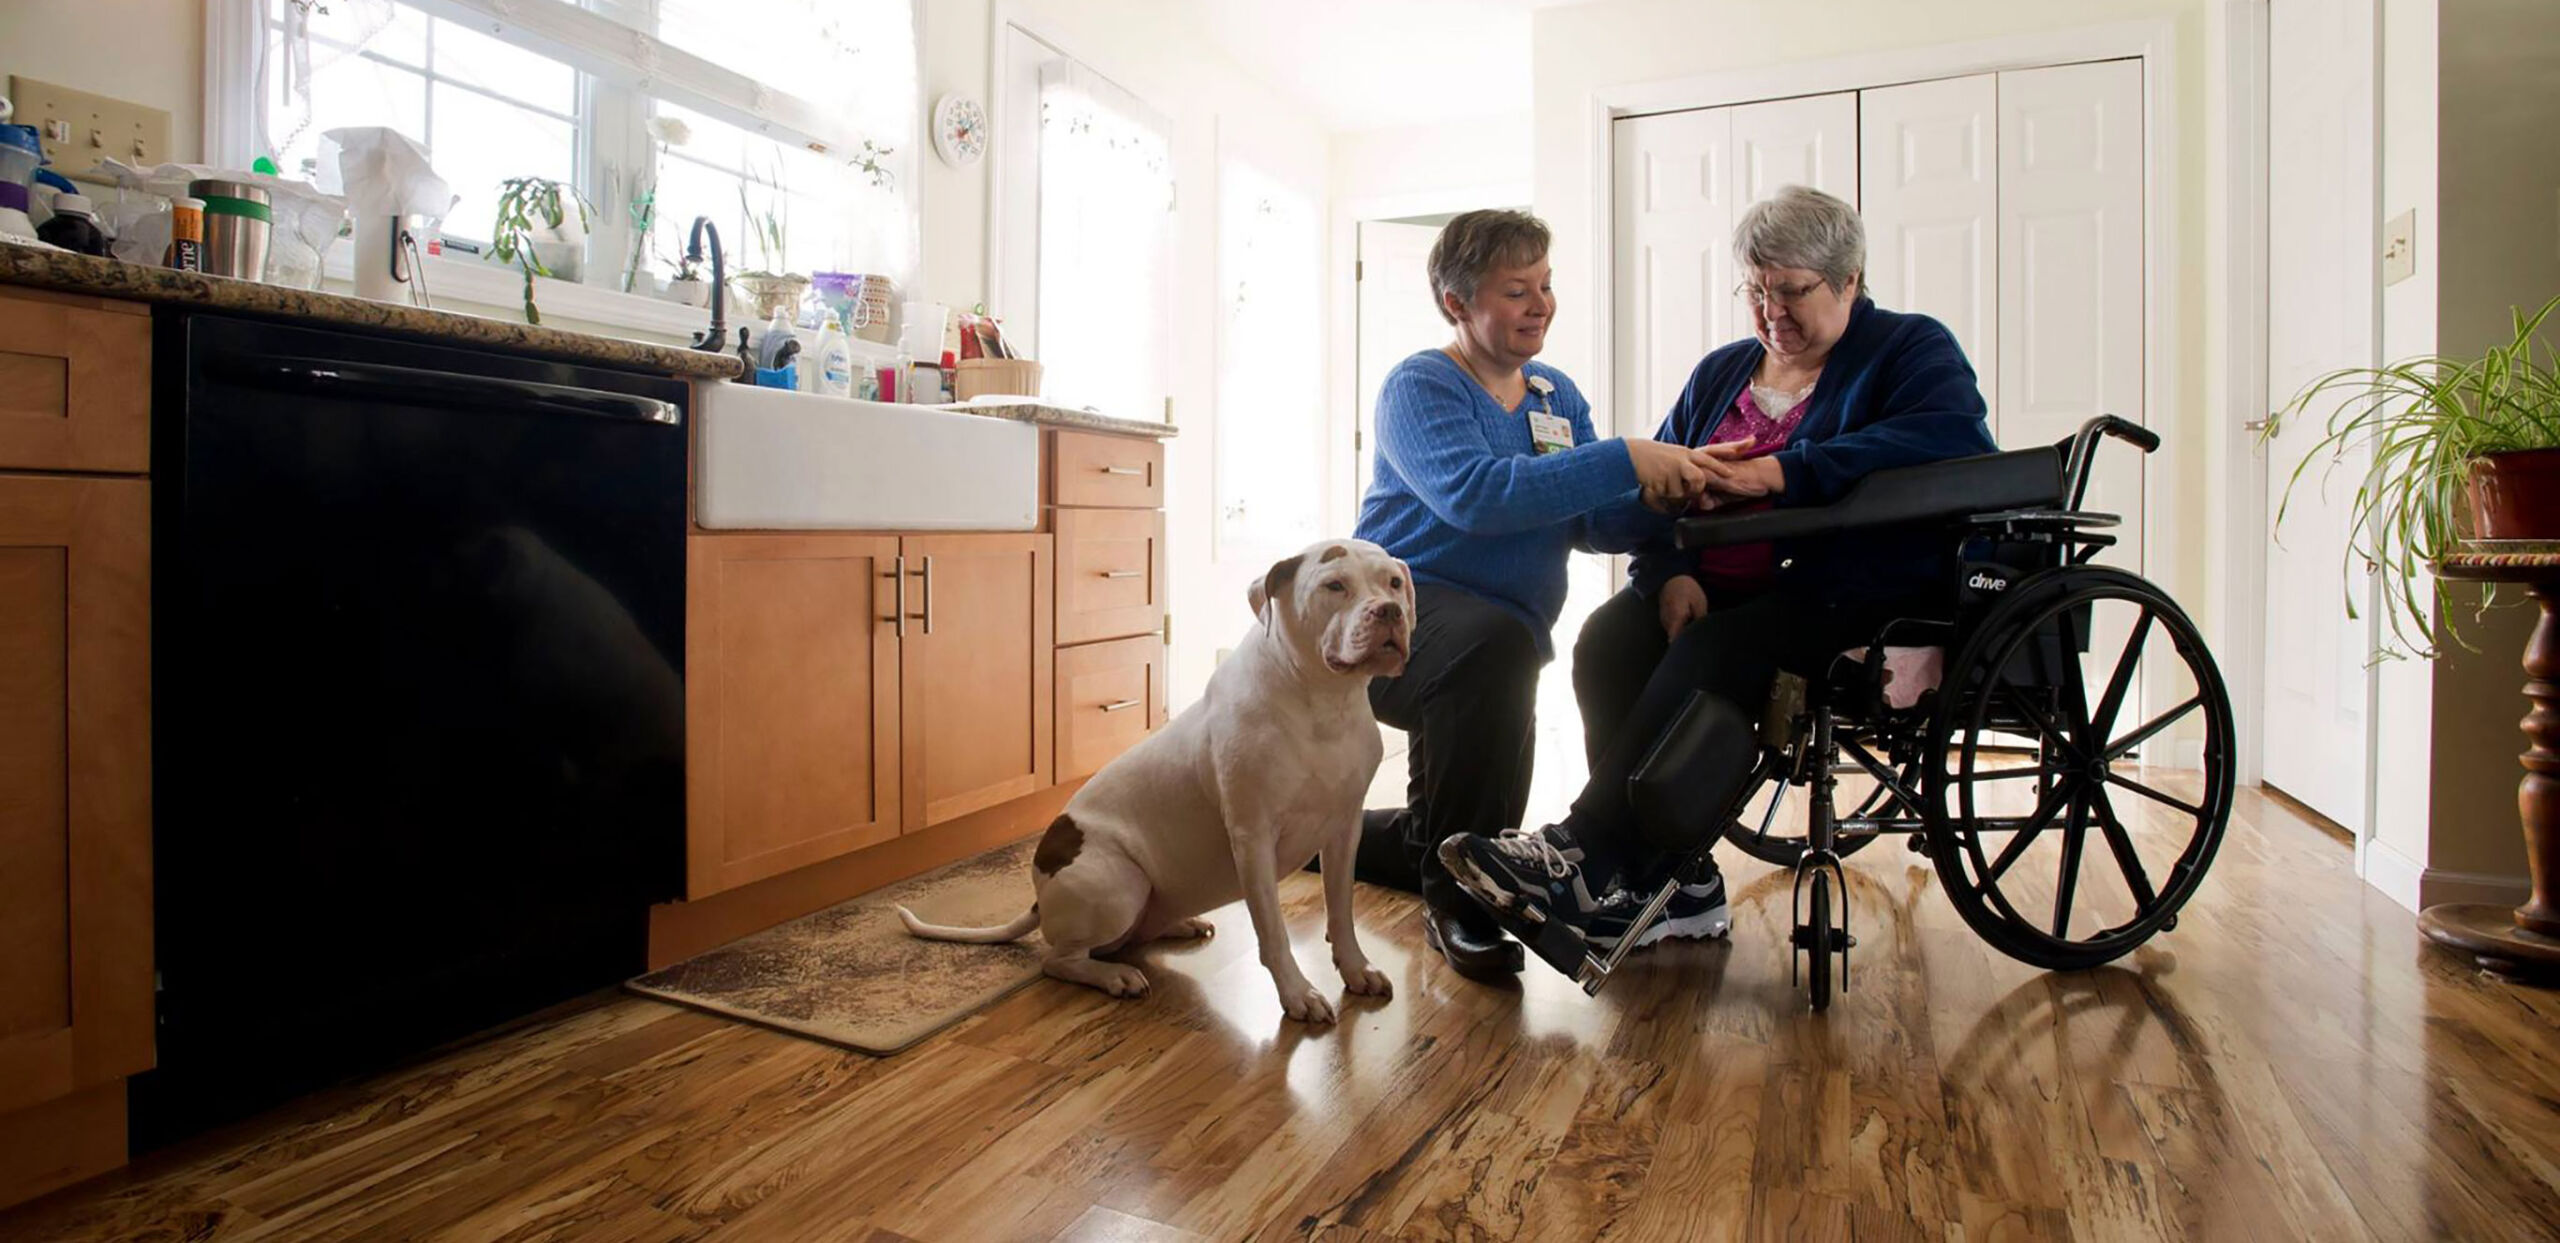 Visiting nurse talks with female patient in wheelchair in her home, Cooley Dickinson VNA & Hospice, Northampton, MA 01060.